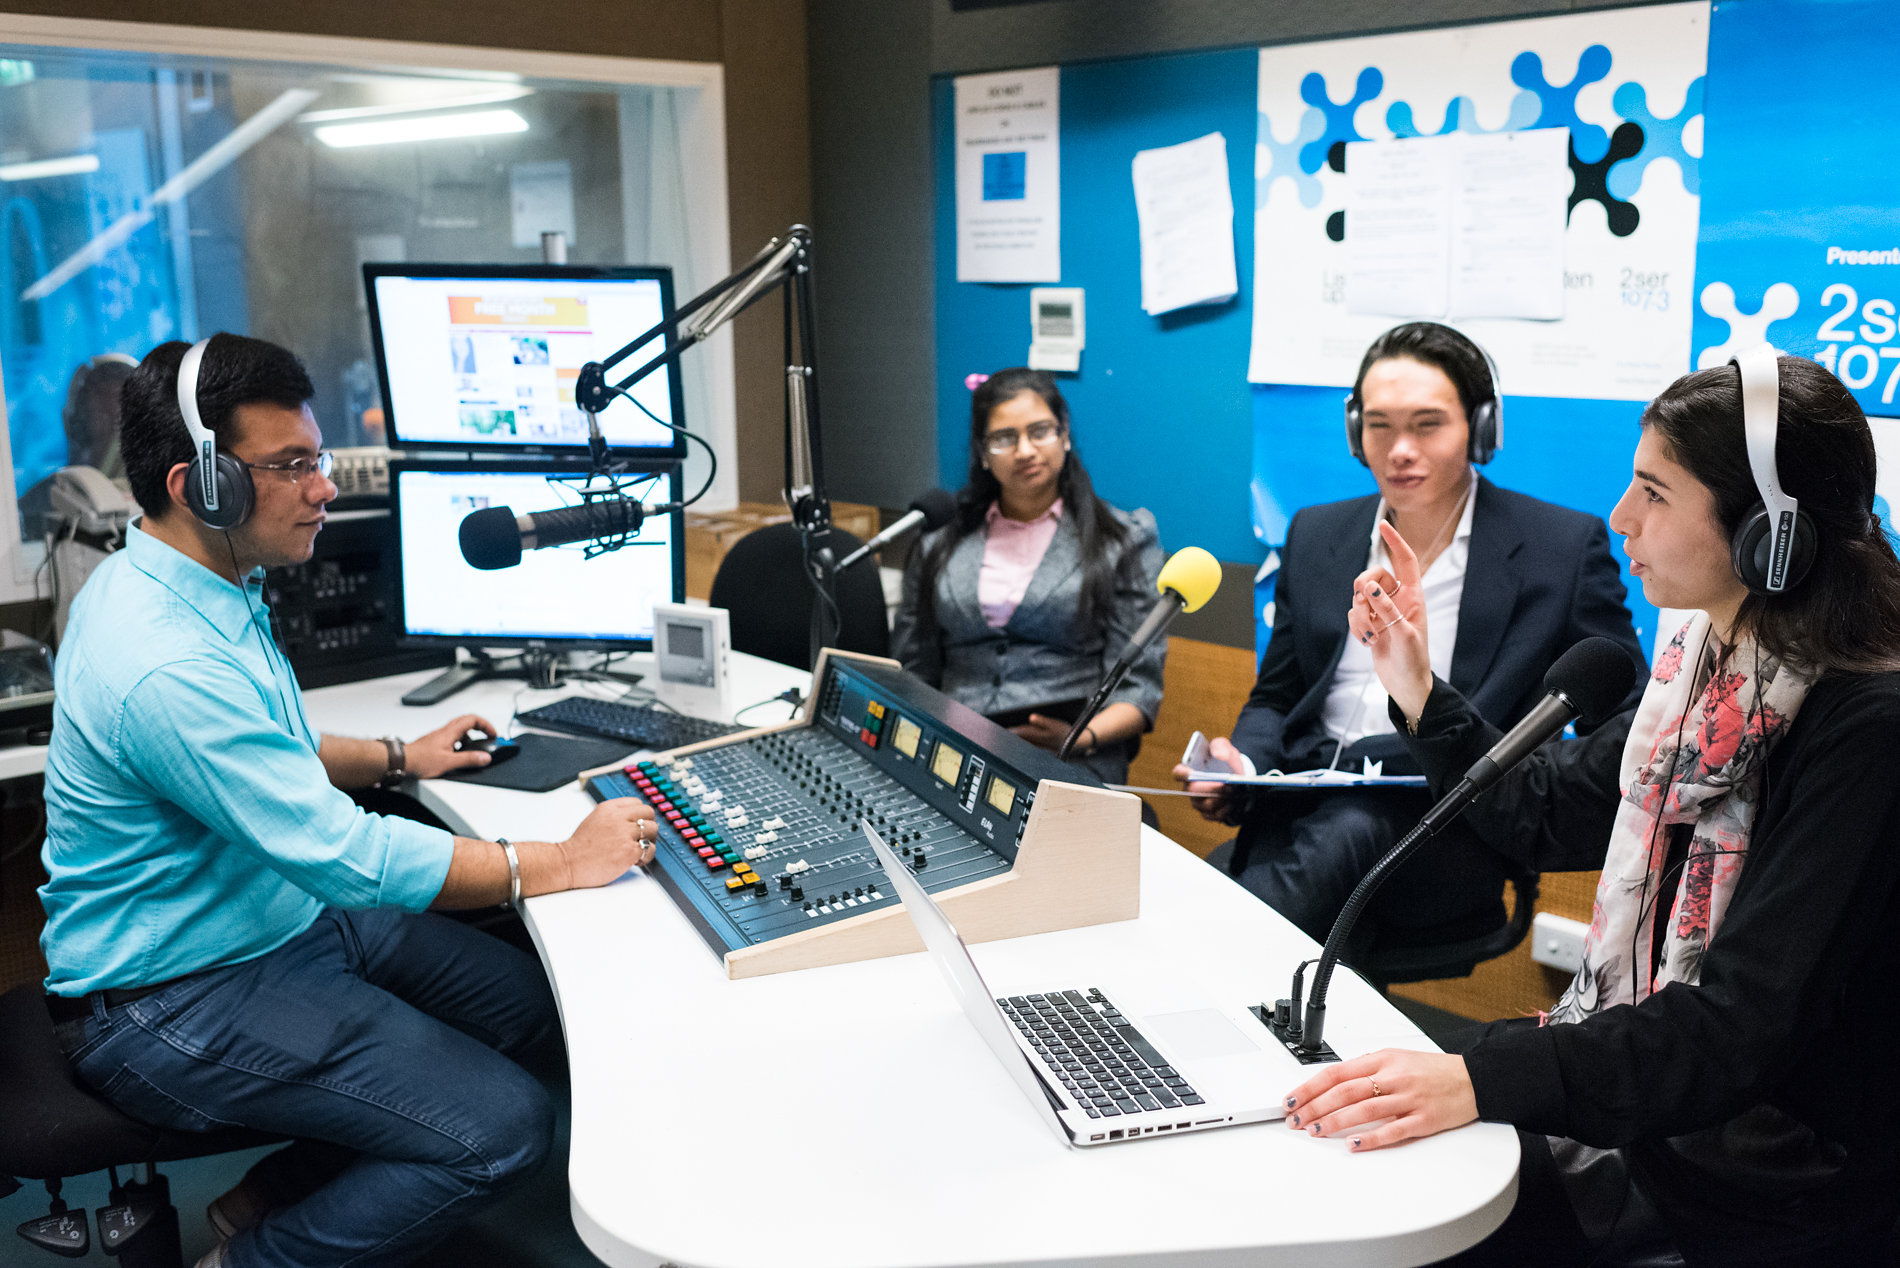 UTS Journalism students radio 2SER